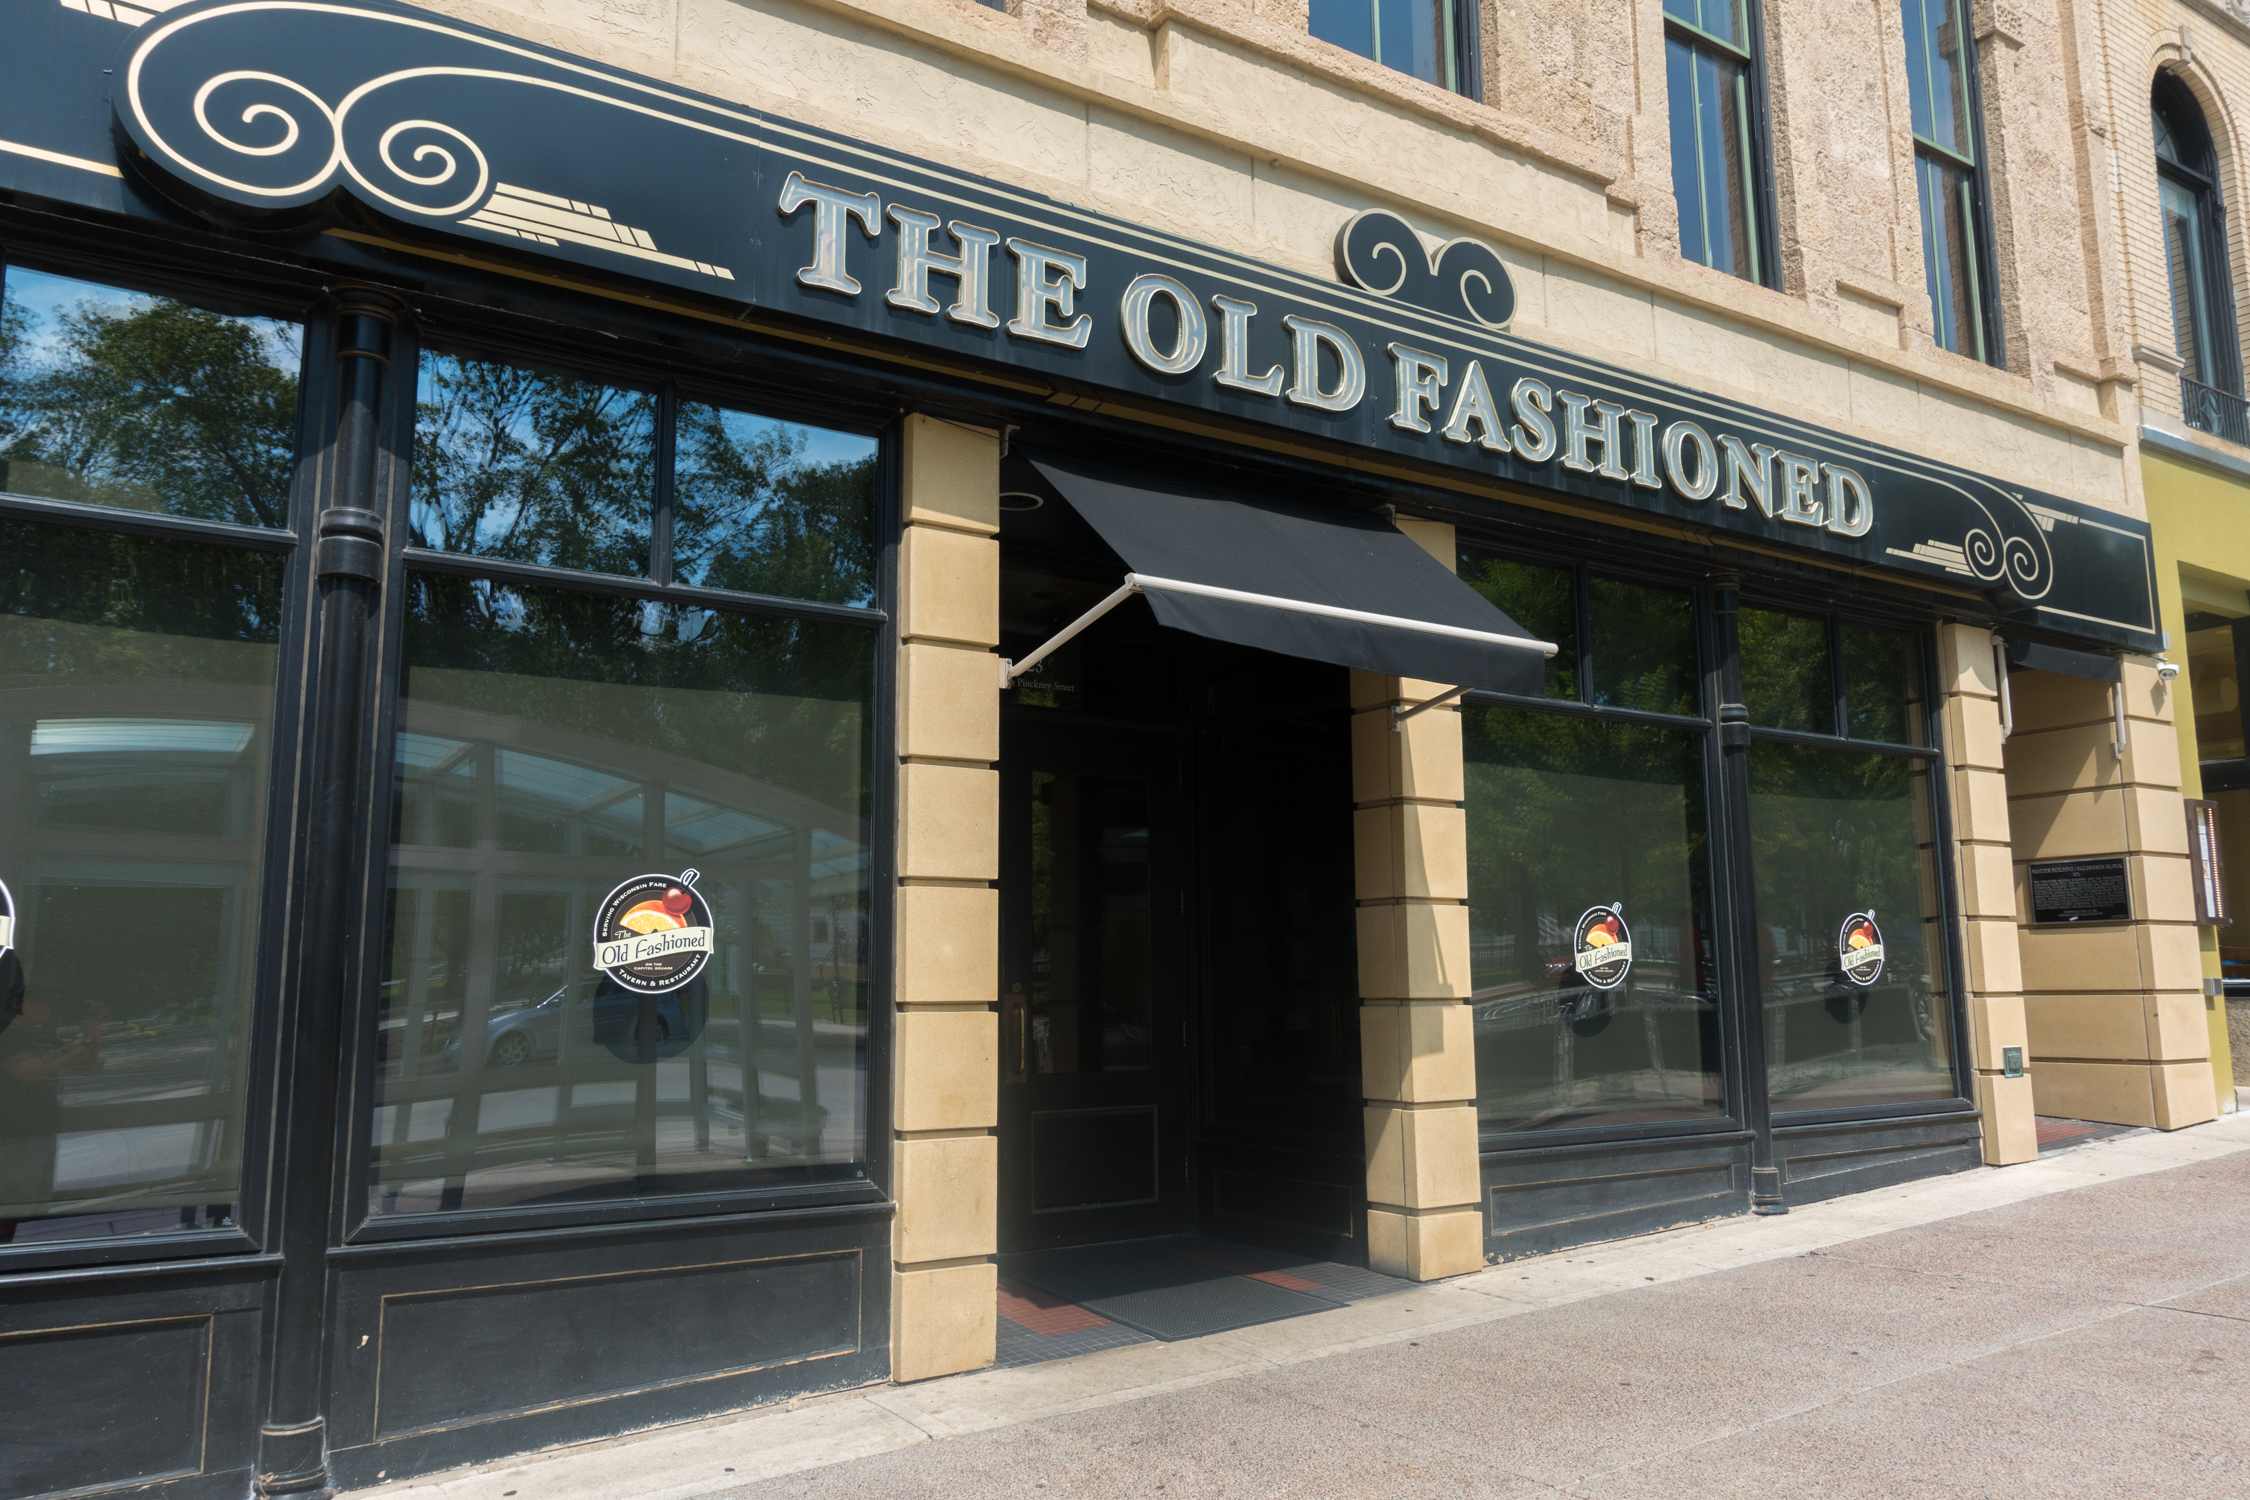 the Old-Fashioned located in Madison, Wisconsin.